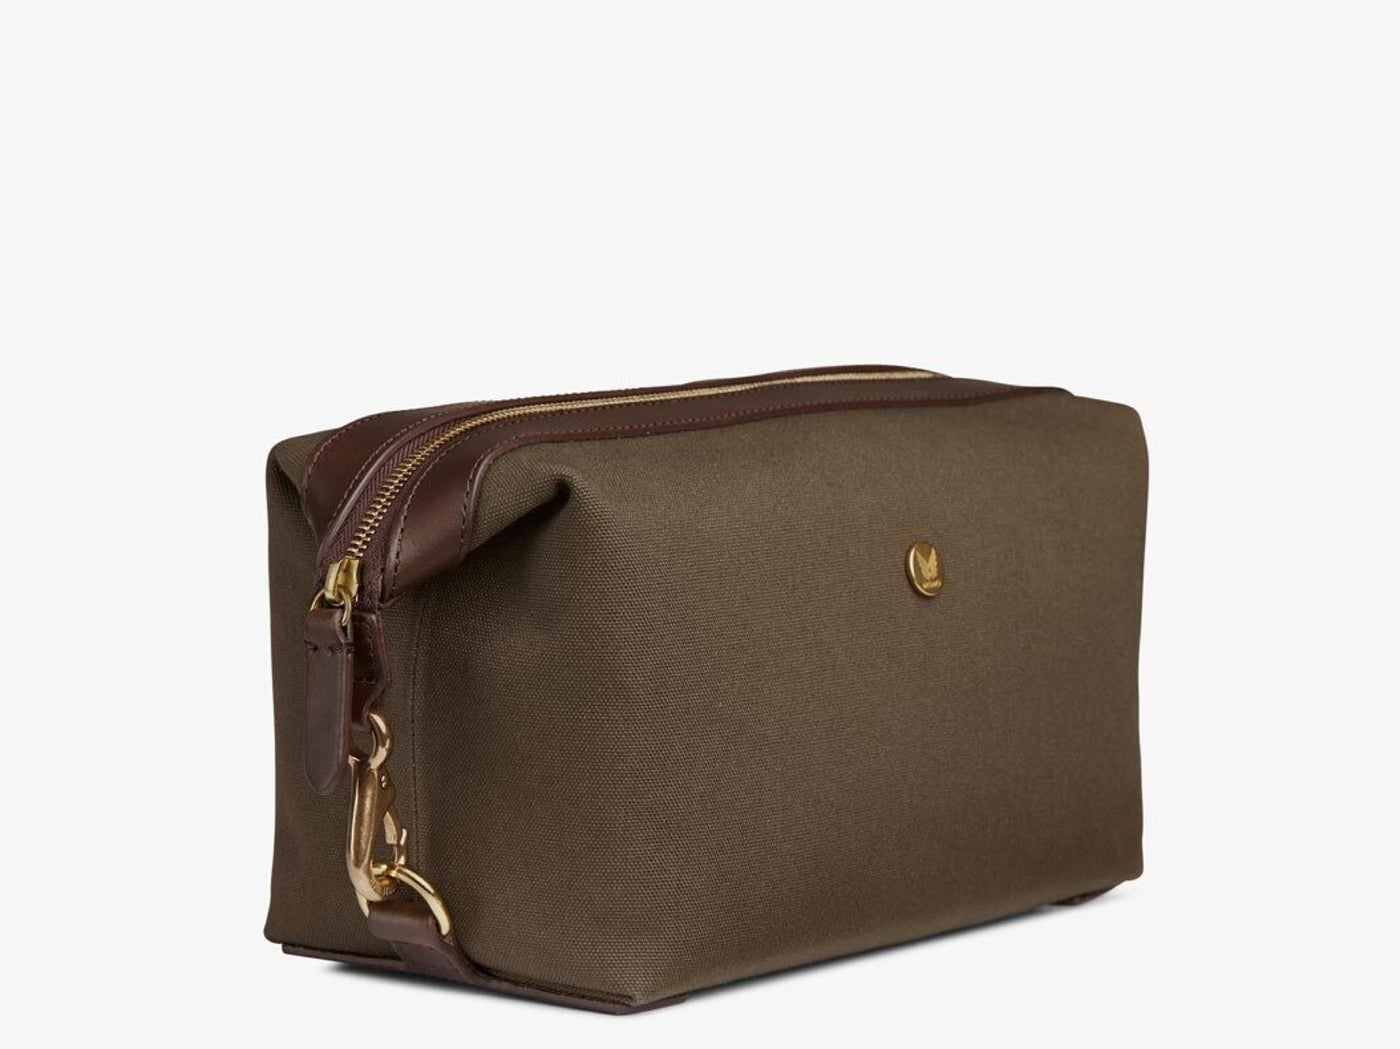 M/S Washbag – Army/Dark Brown